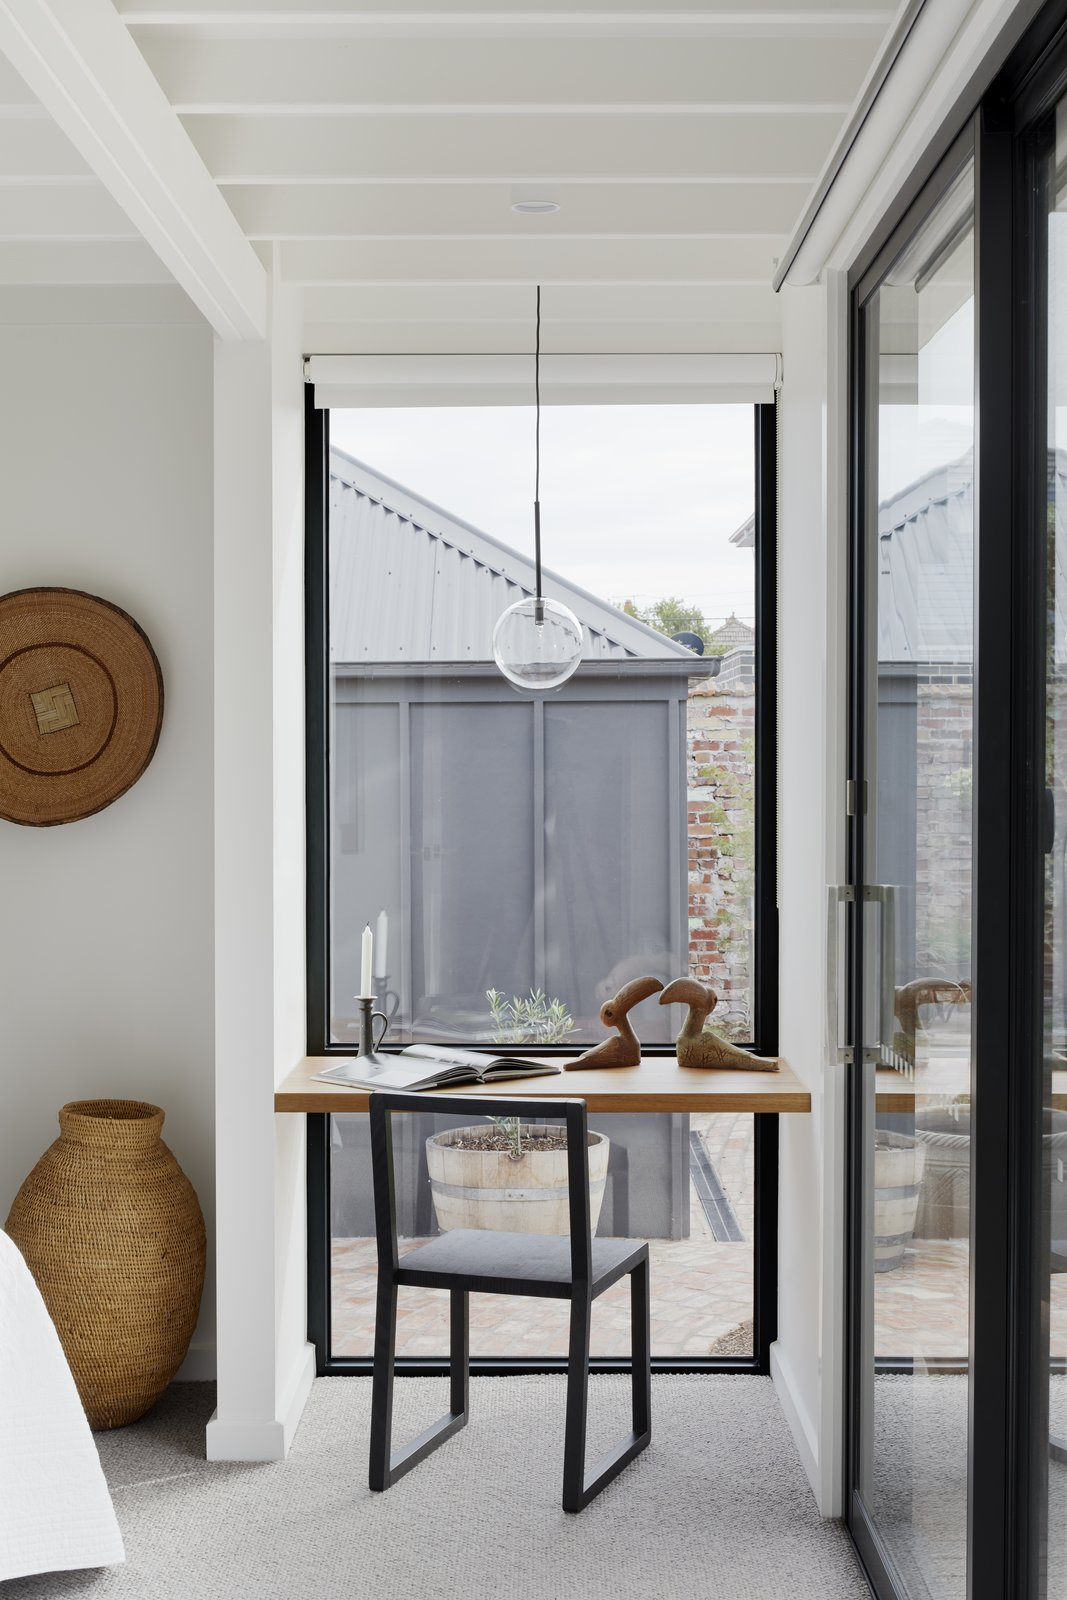 Bedroom, Bench, Chair, Accent Lighting, Pendant Lighting, and Carpet Floor A small nook in the bedroom provides a quiet desk space overlooking the rear garden  Preston 1